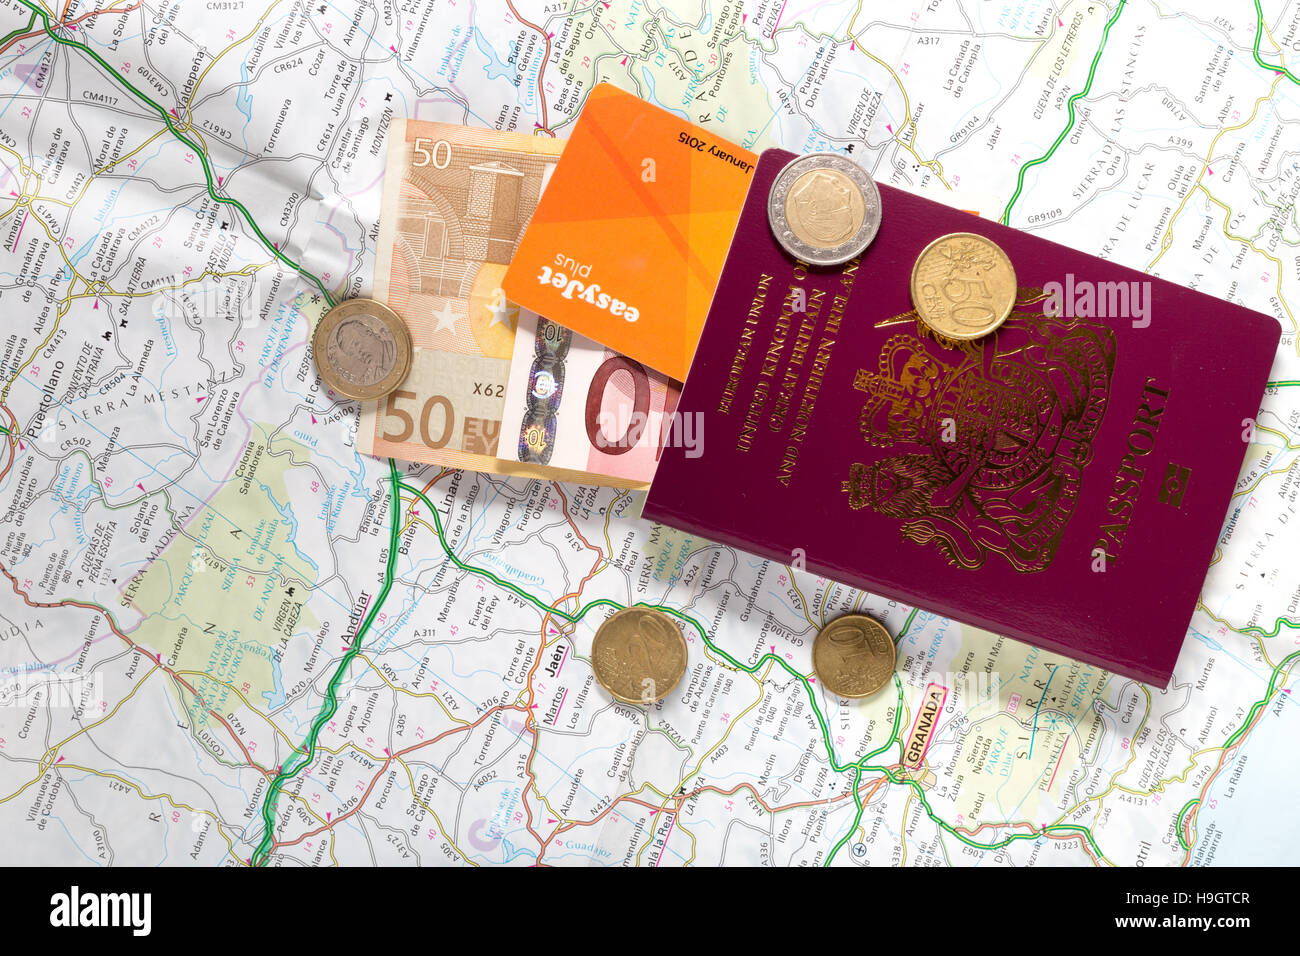 Road Map Of Spain.A British Passport Euro Coins And Notes On A Road Map Of Spain